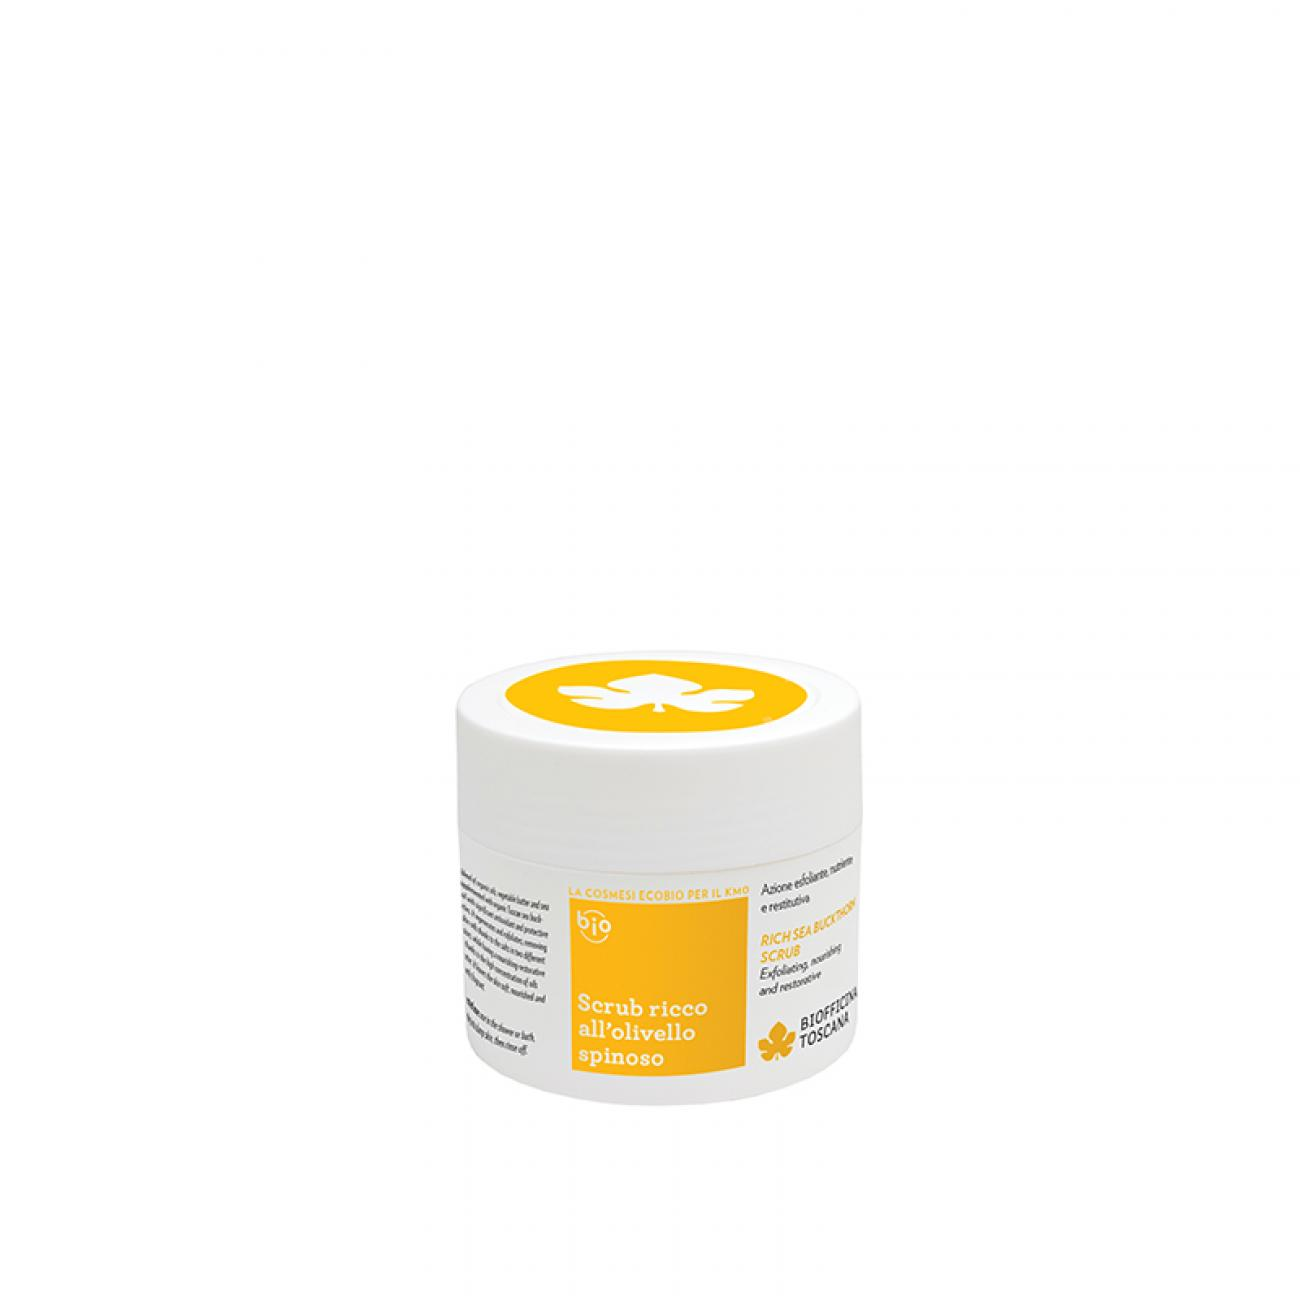 Scrub ricco all'olivello spinoso 150gr